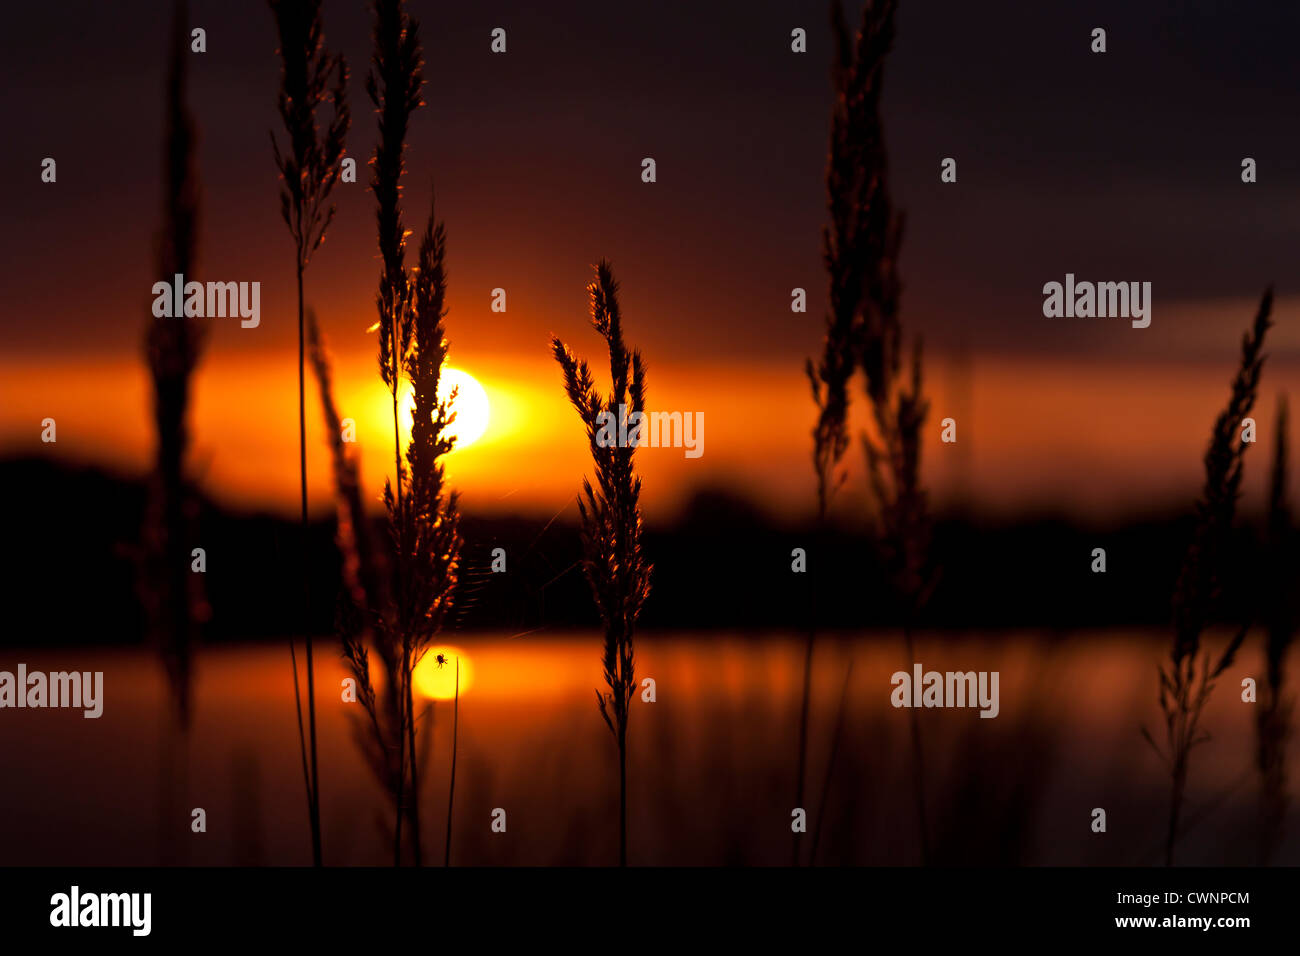 Sonnenuntergang hinter Gras am See, Sunset behind gras at a lake - Stock Image